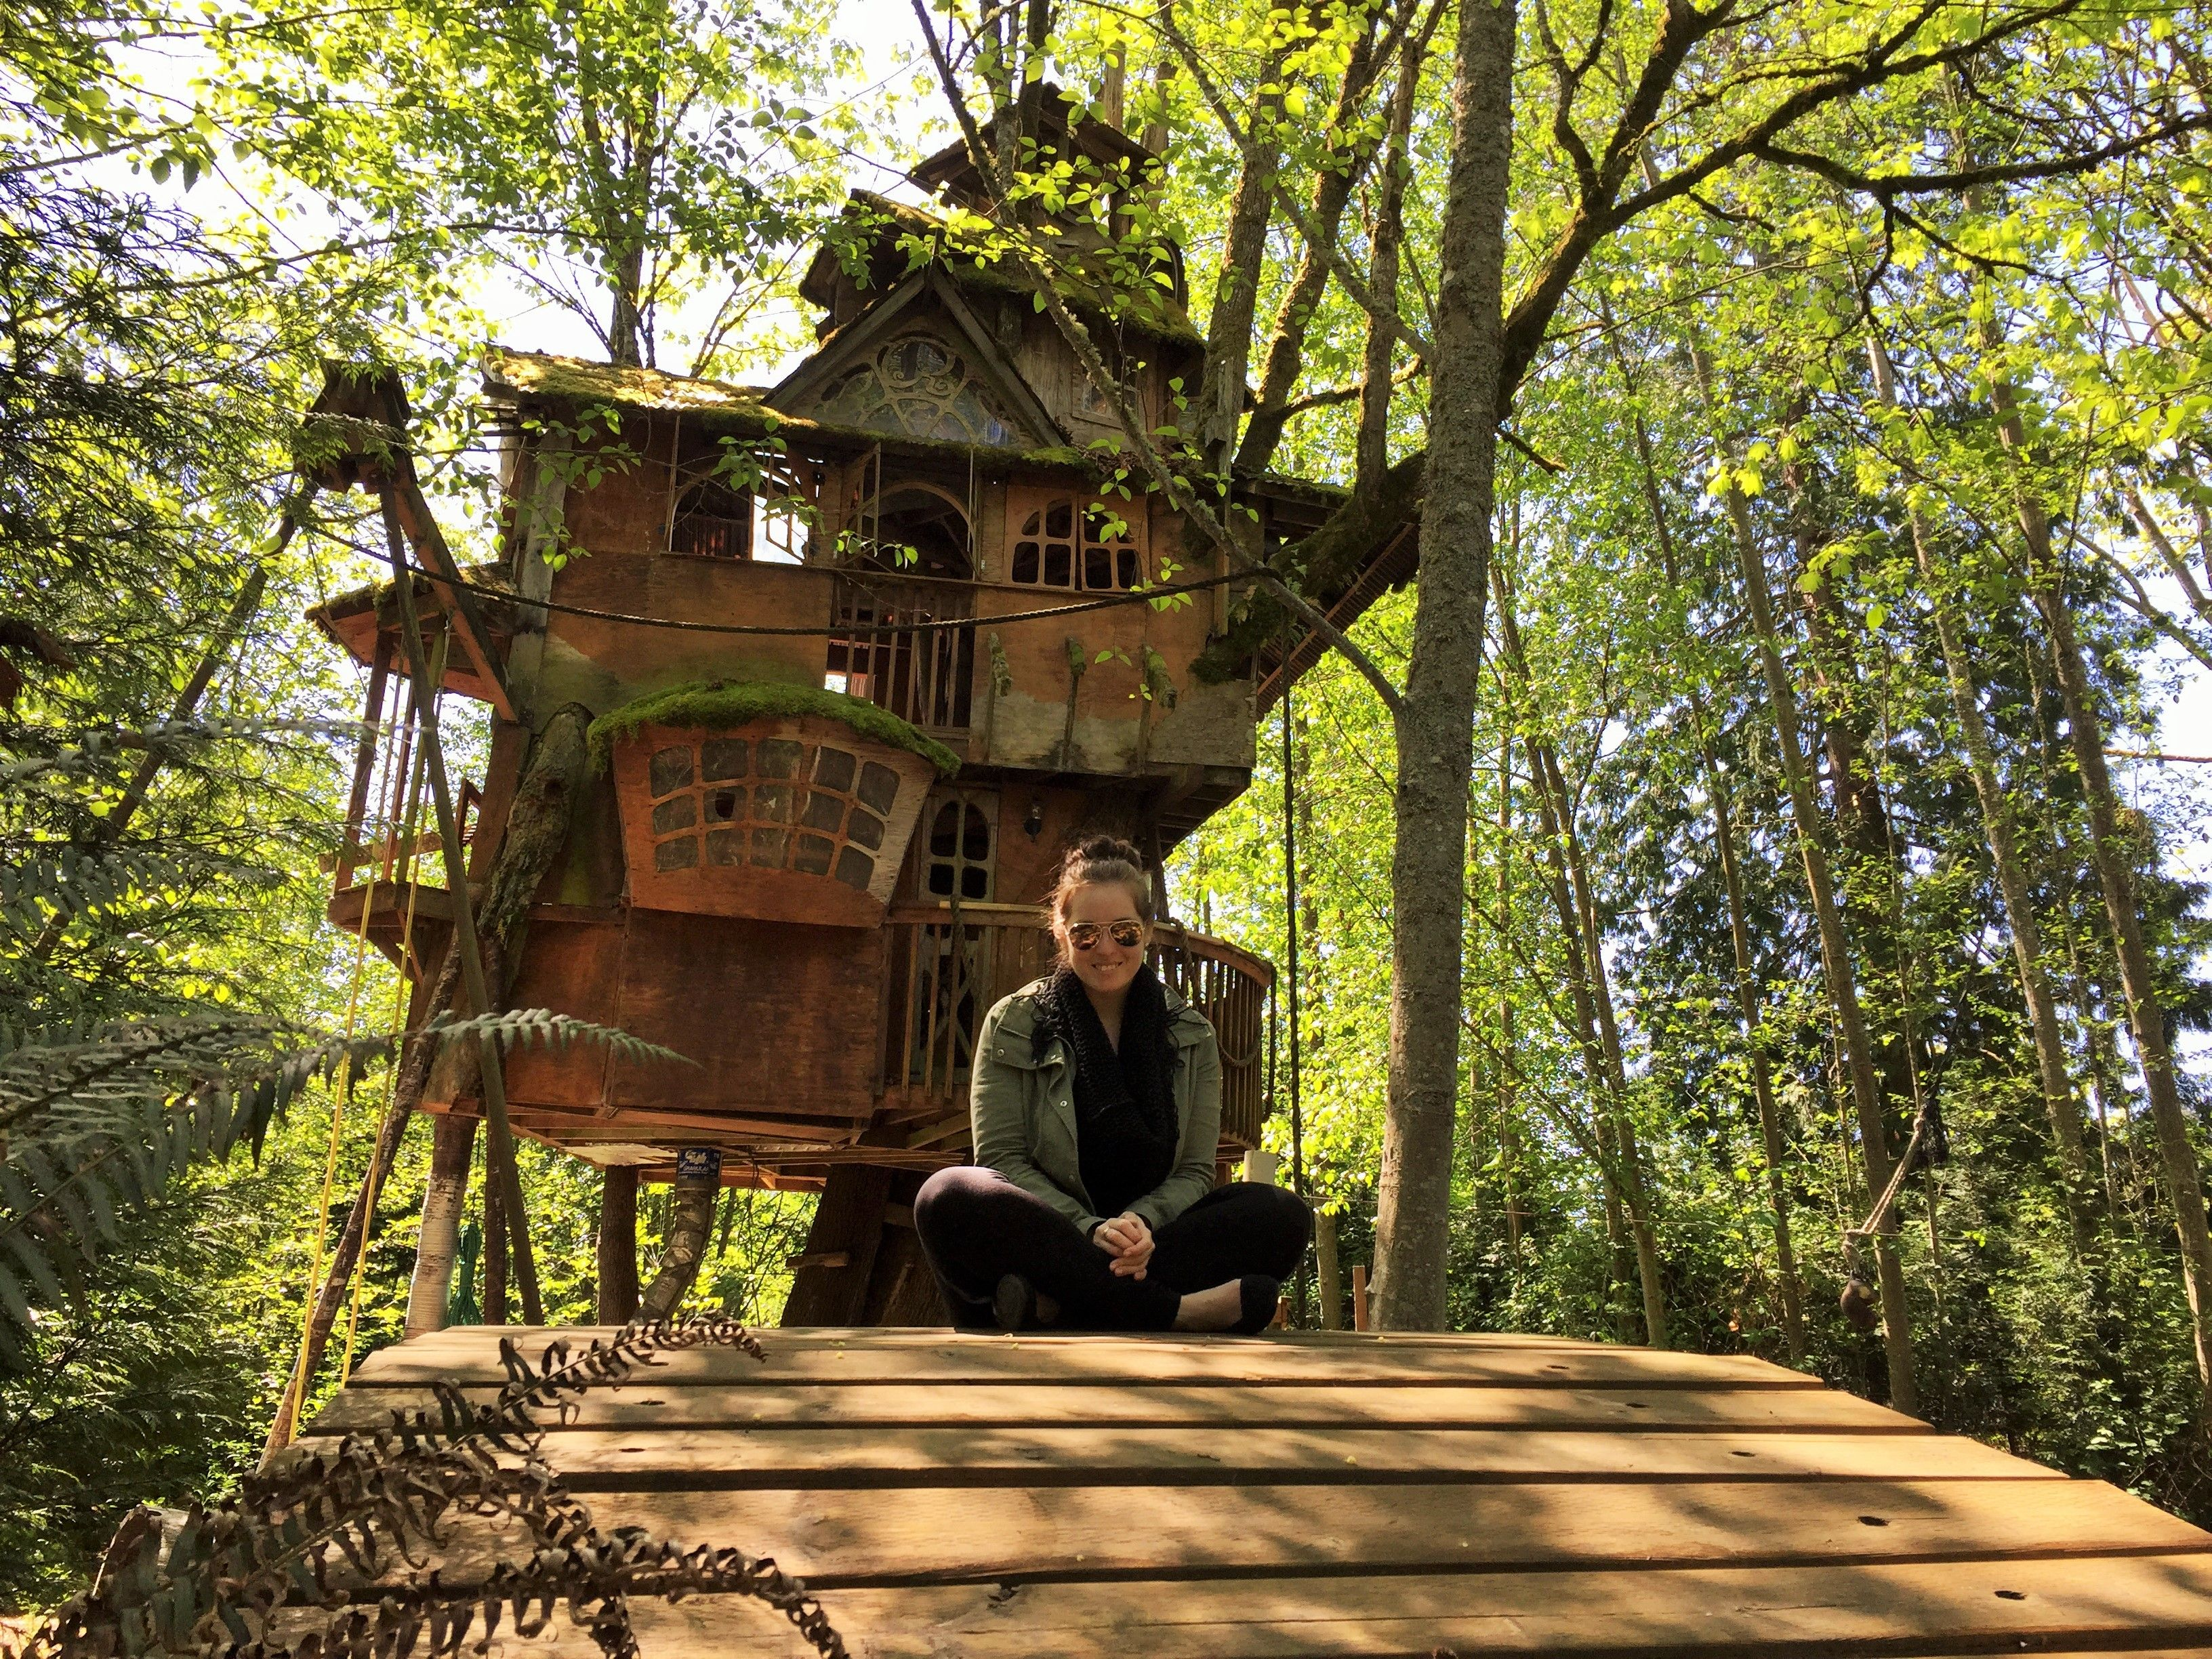 The Abandoned Treehouse Seattle